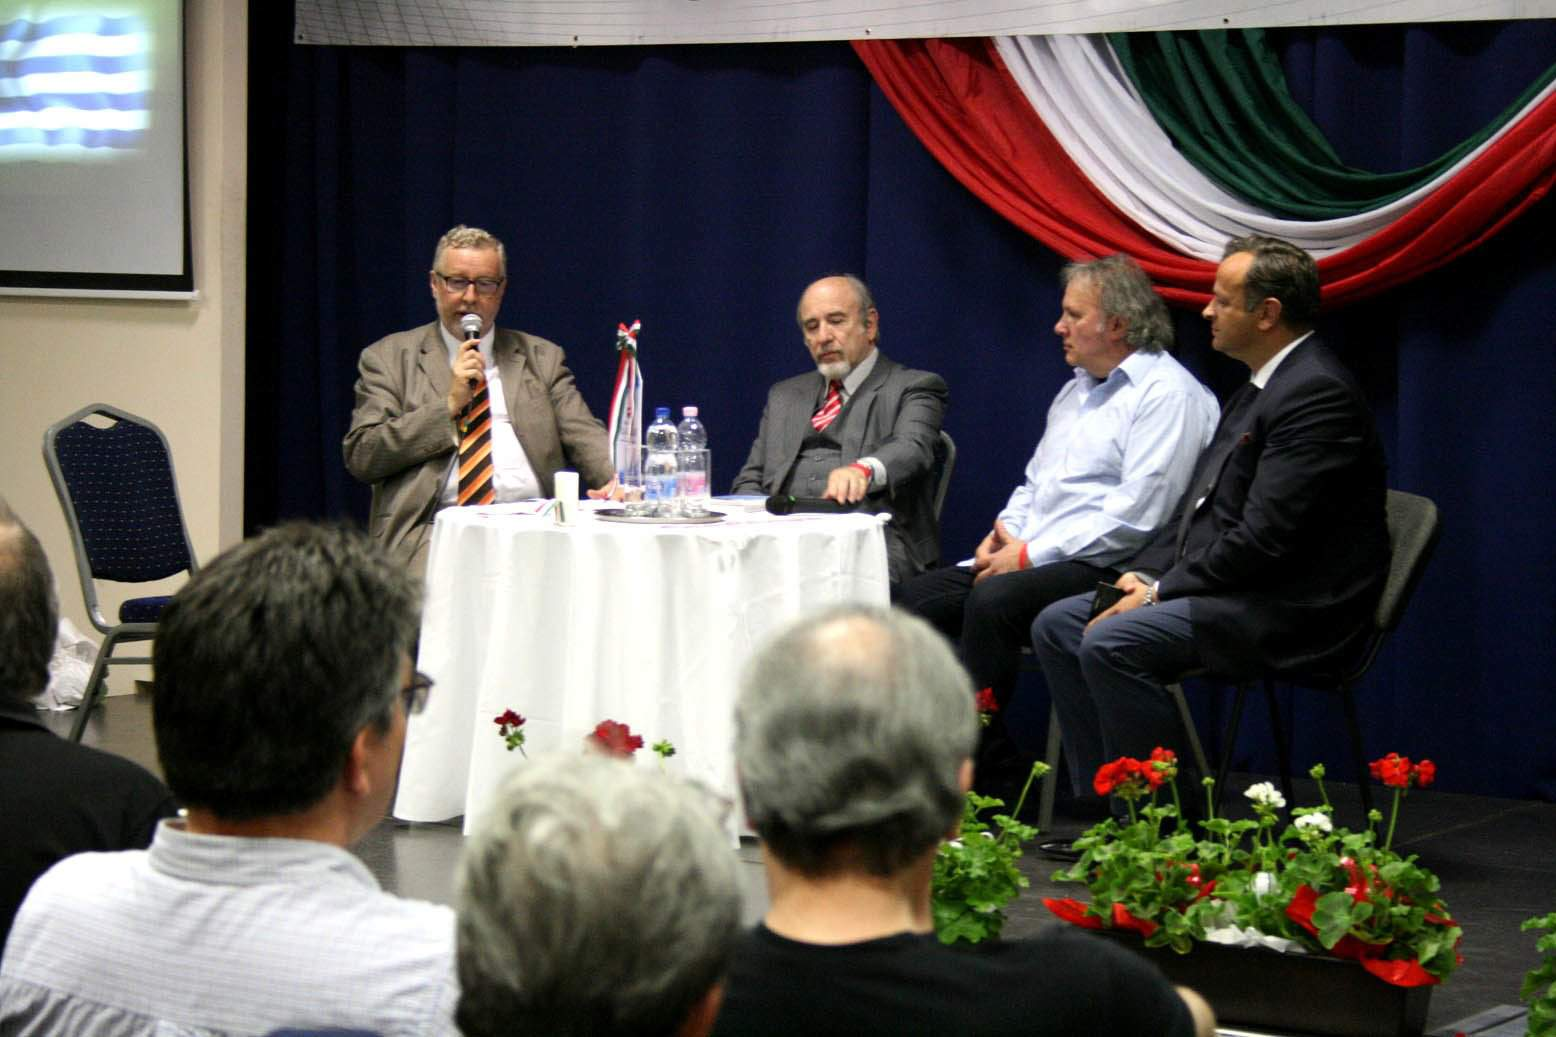 HTCC participated in the 6th Hungarians' World Meeting